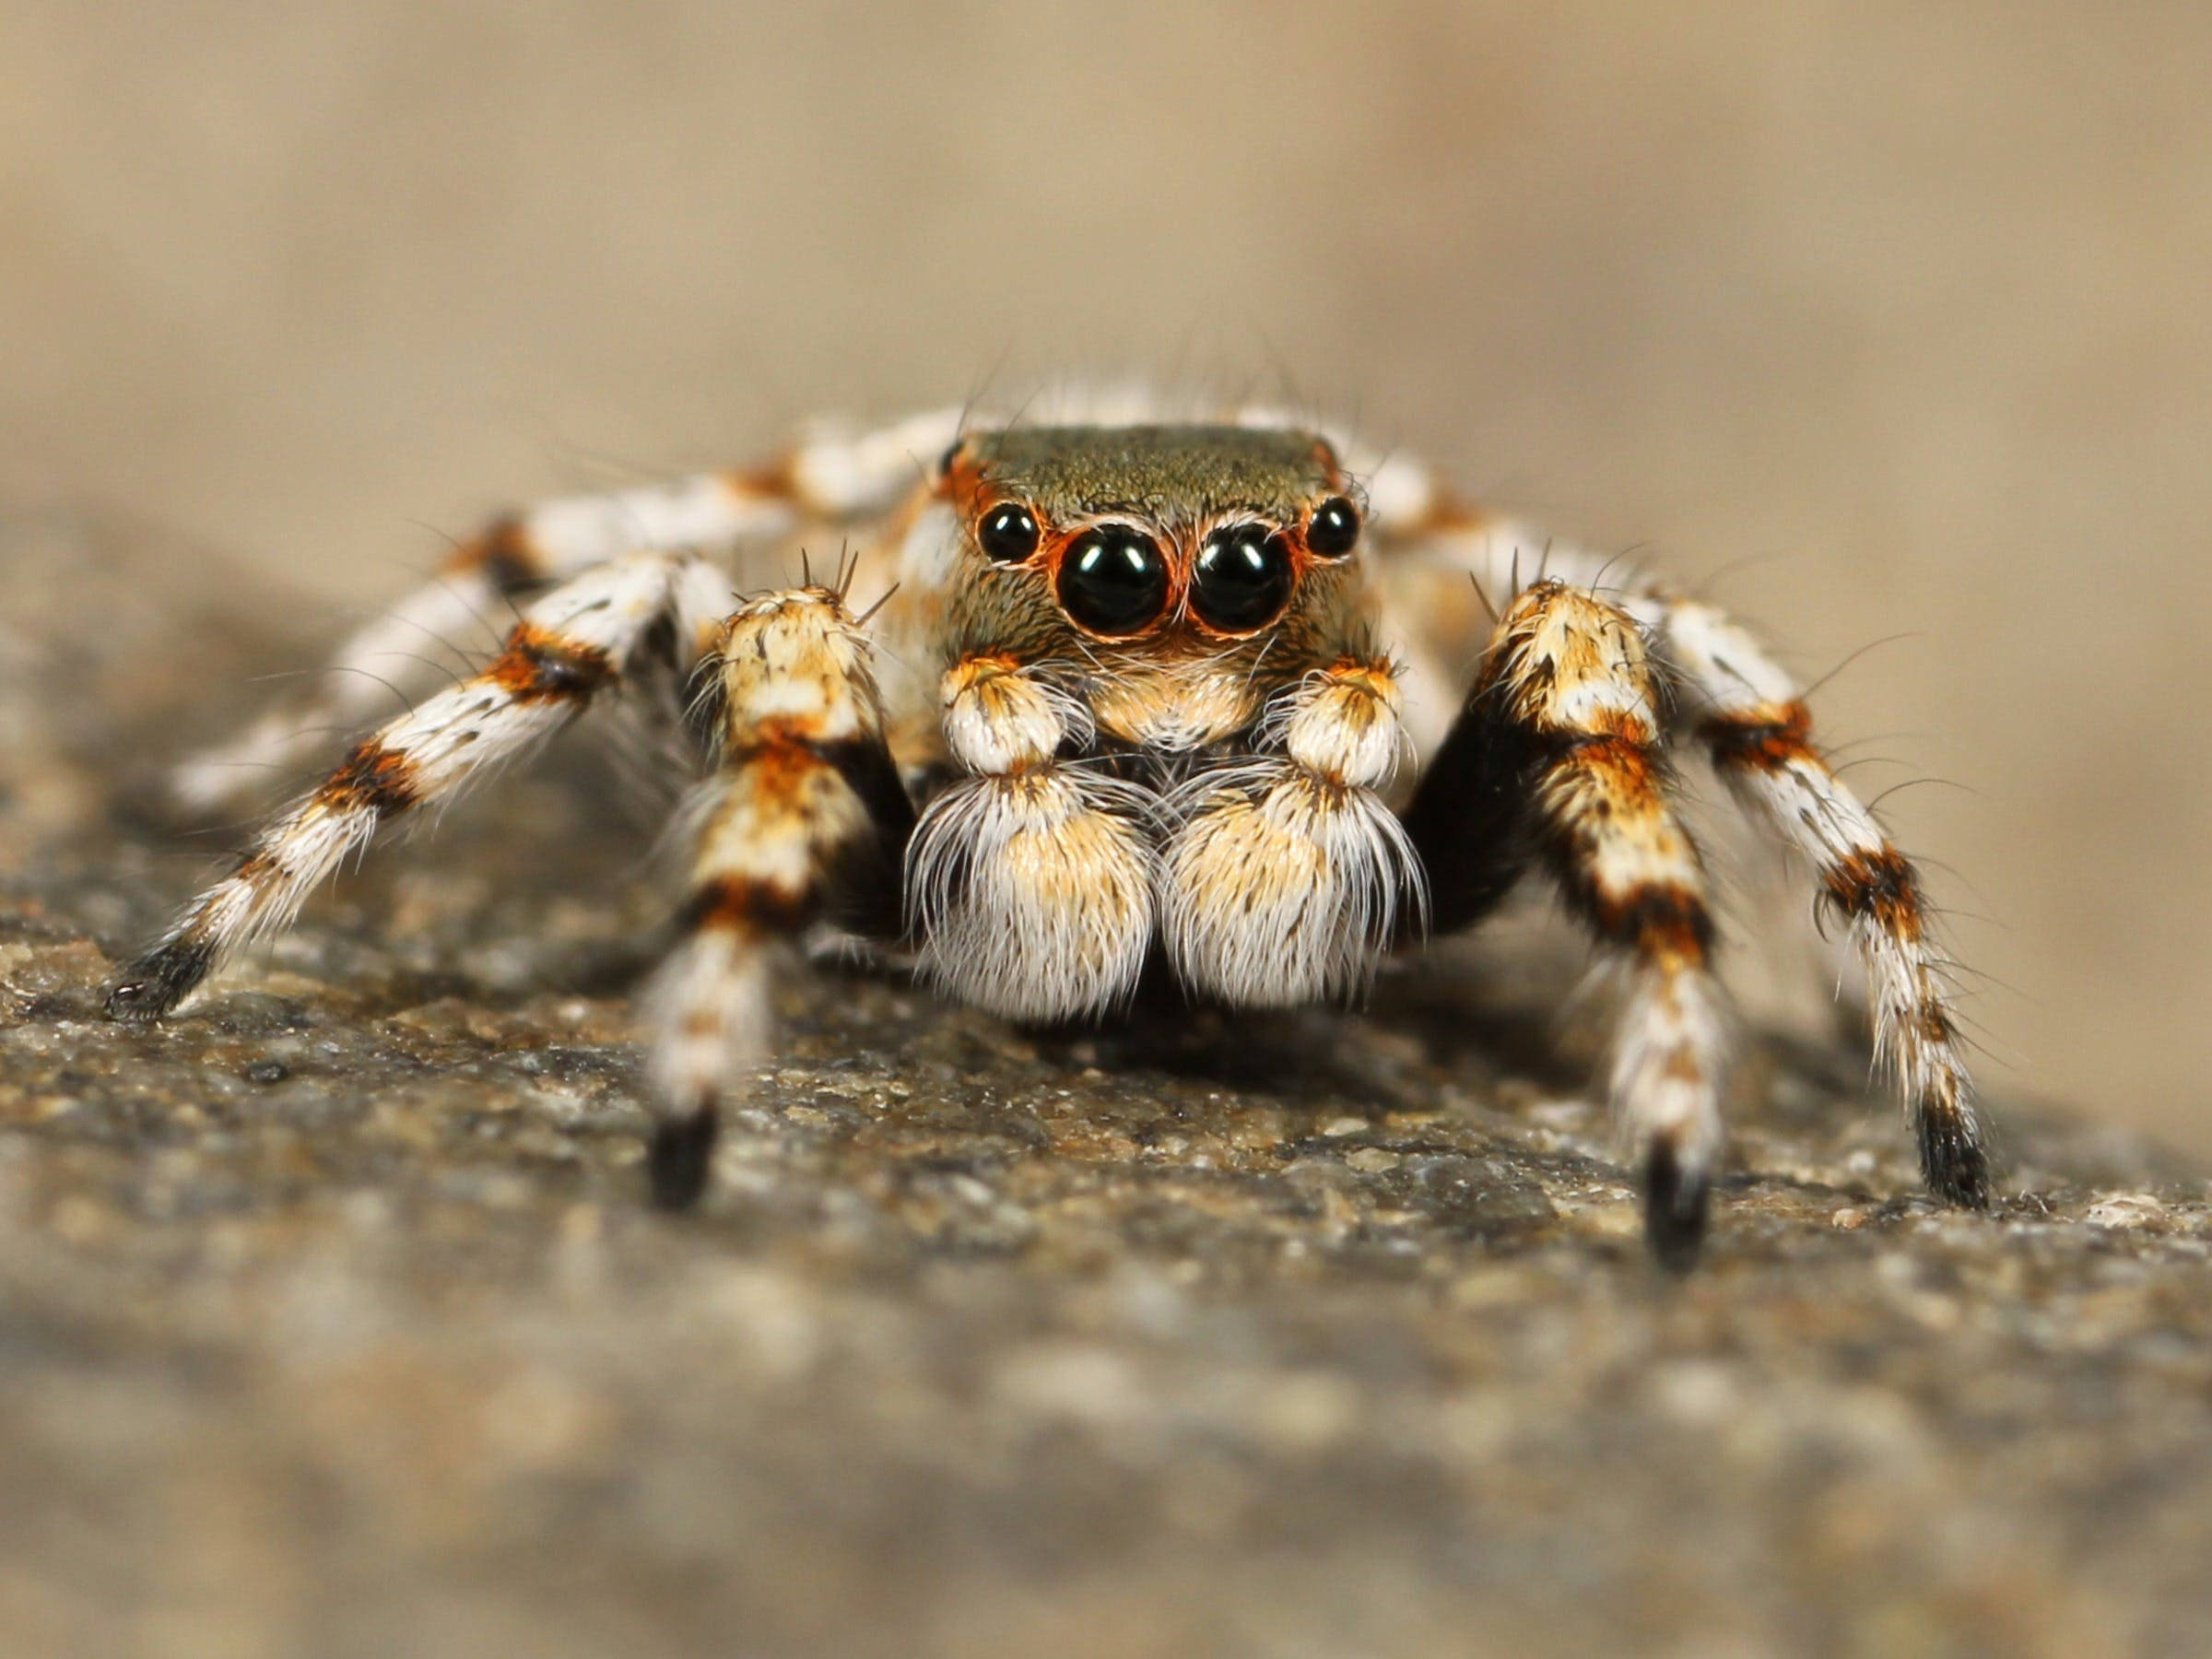 Brown and White Spider